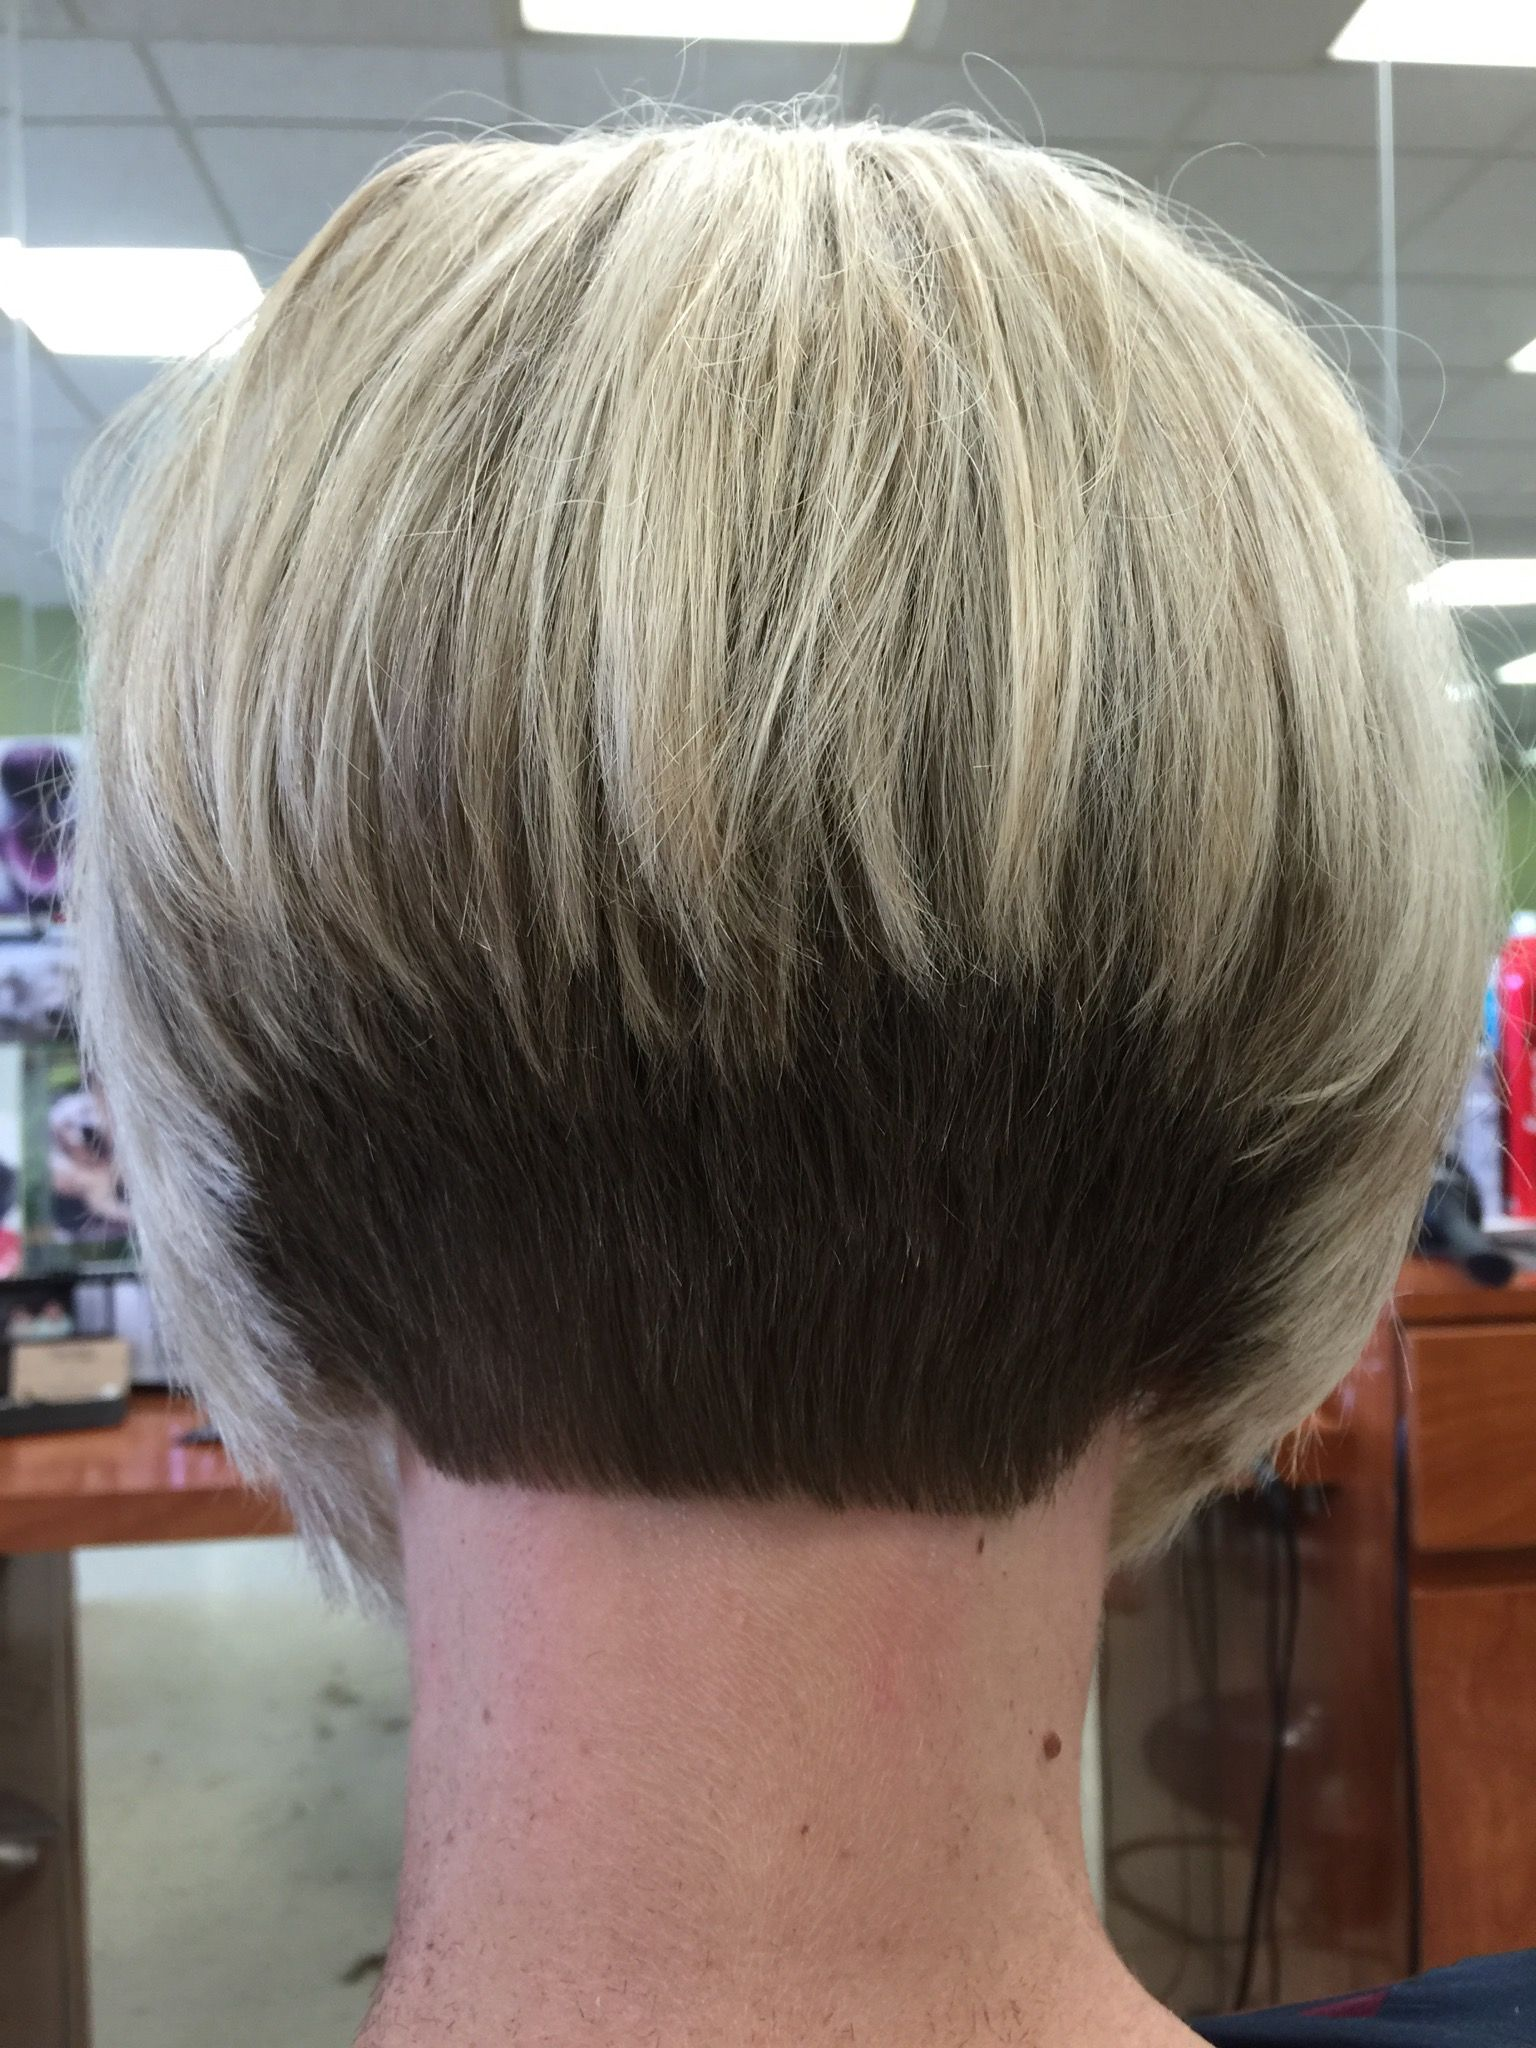 Hairstyle Cut For Women Stacked Bobs Bobs And Haircuts